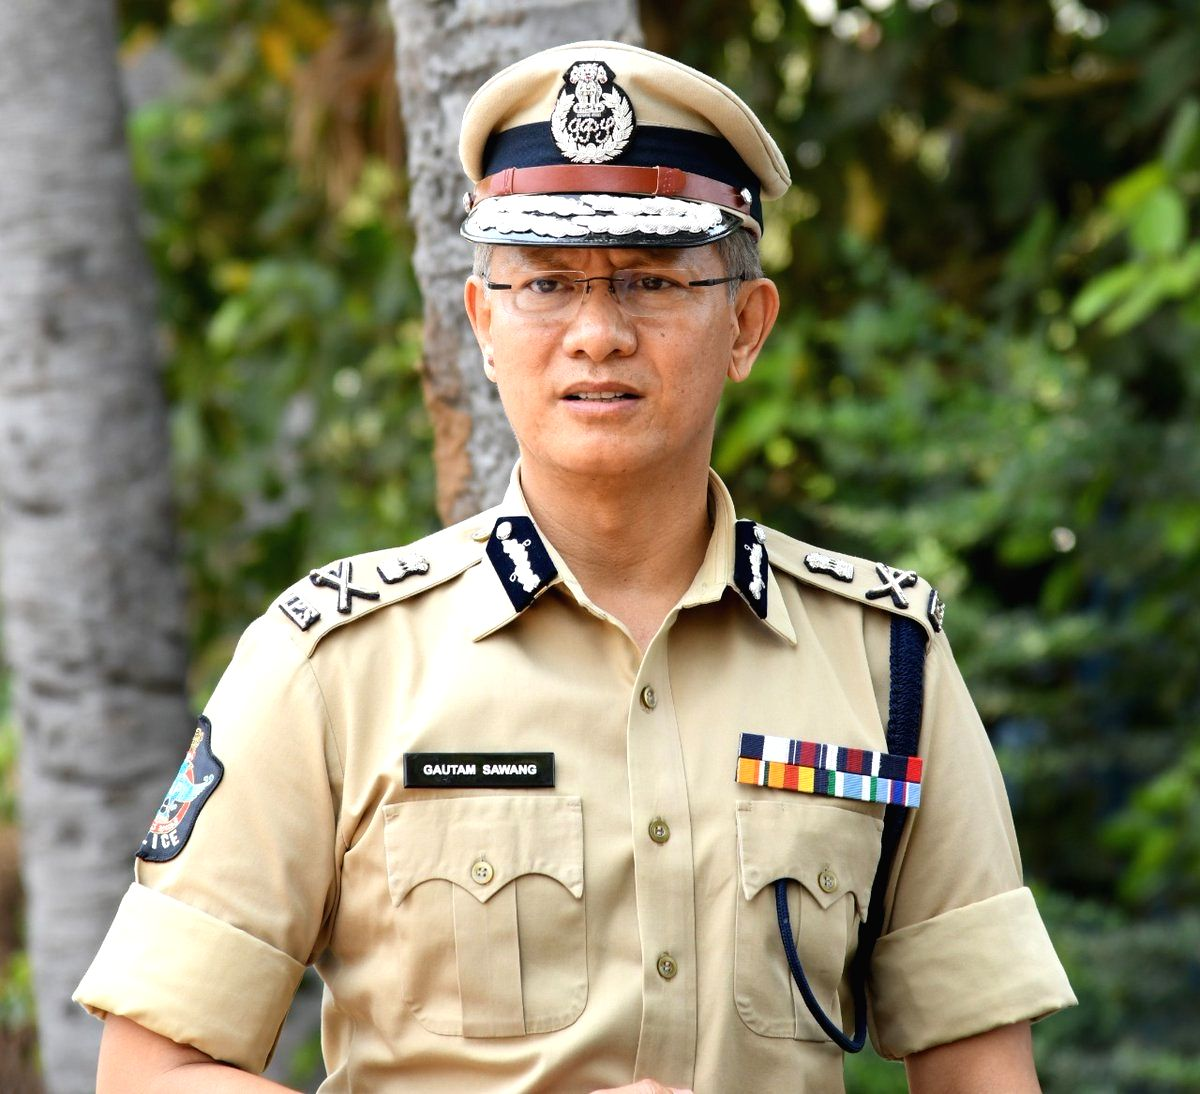 Write to me directly, not via media: Andhra DGP to Chandrababu  (Photo: IANS TWITTER)